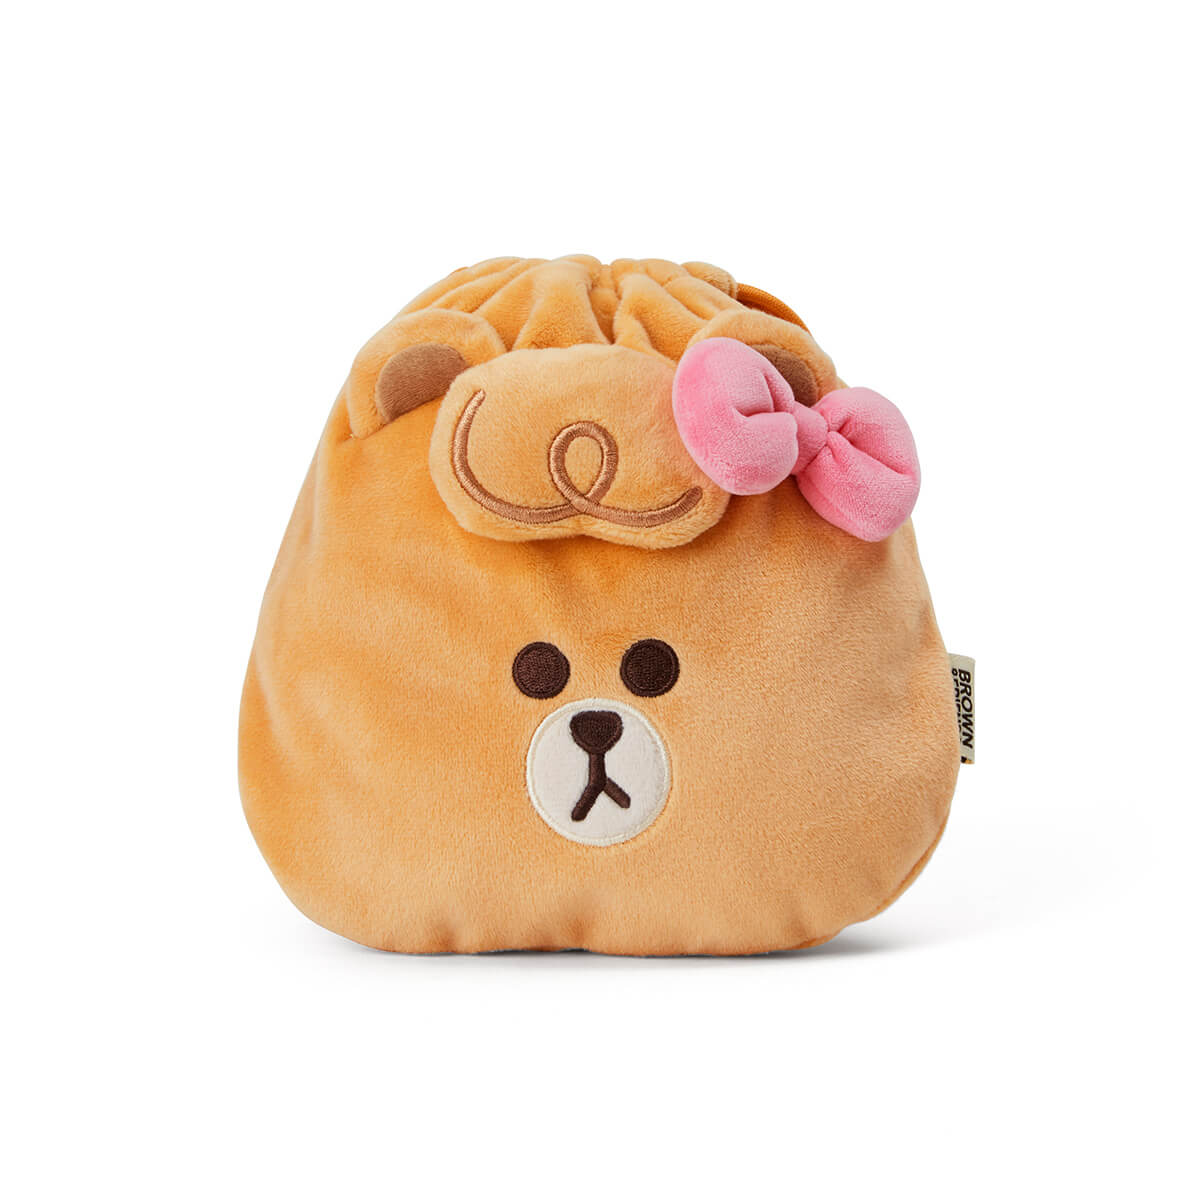 MINI FRIENDS CHOCO Drawstring Pouch